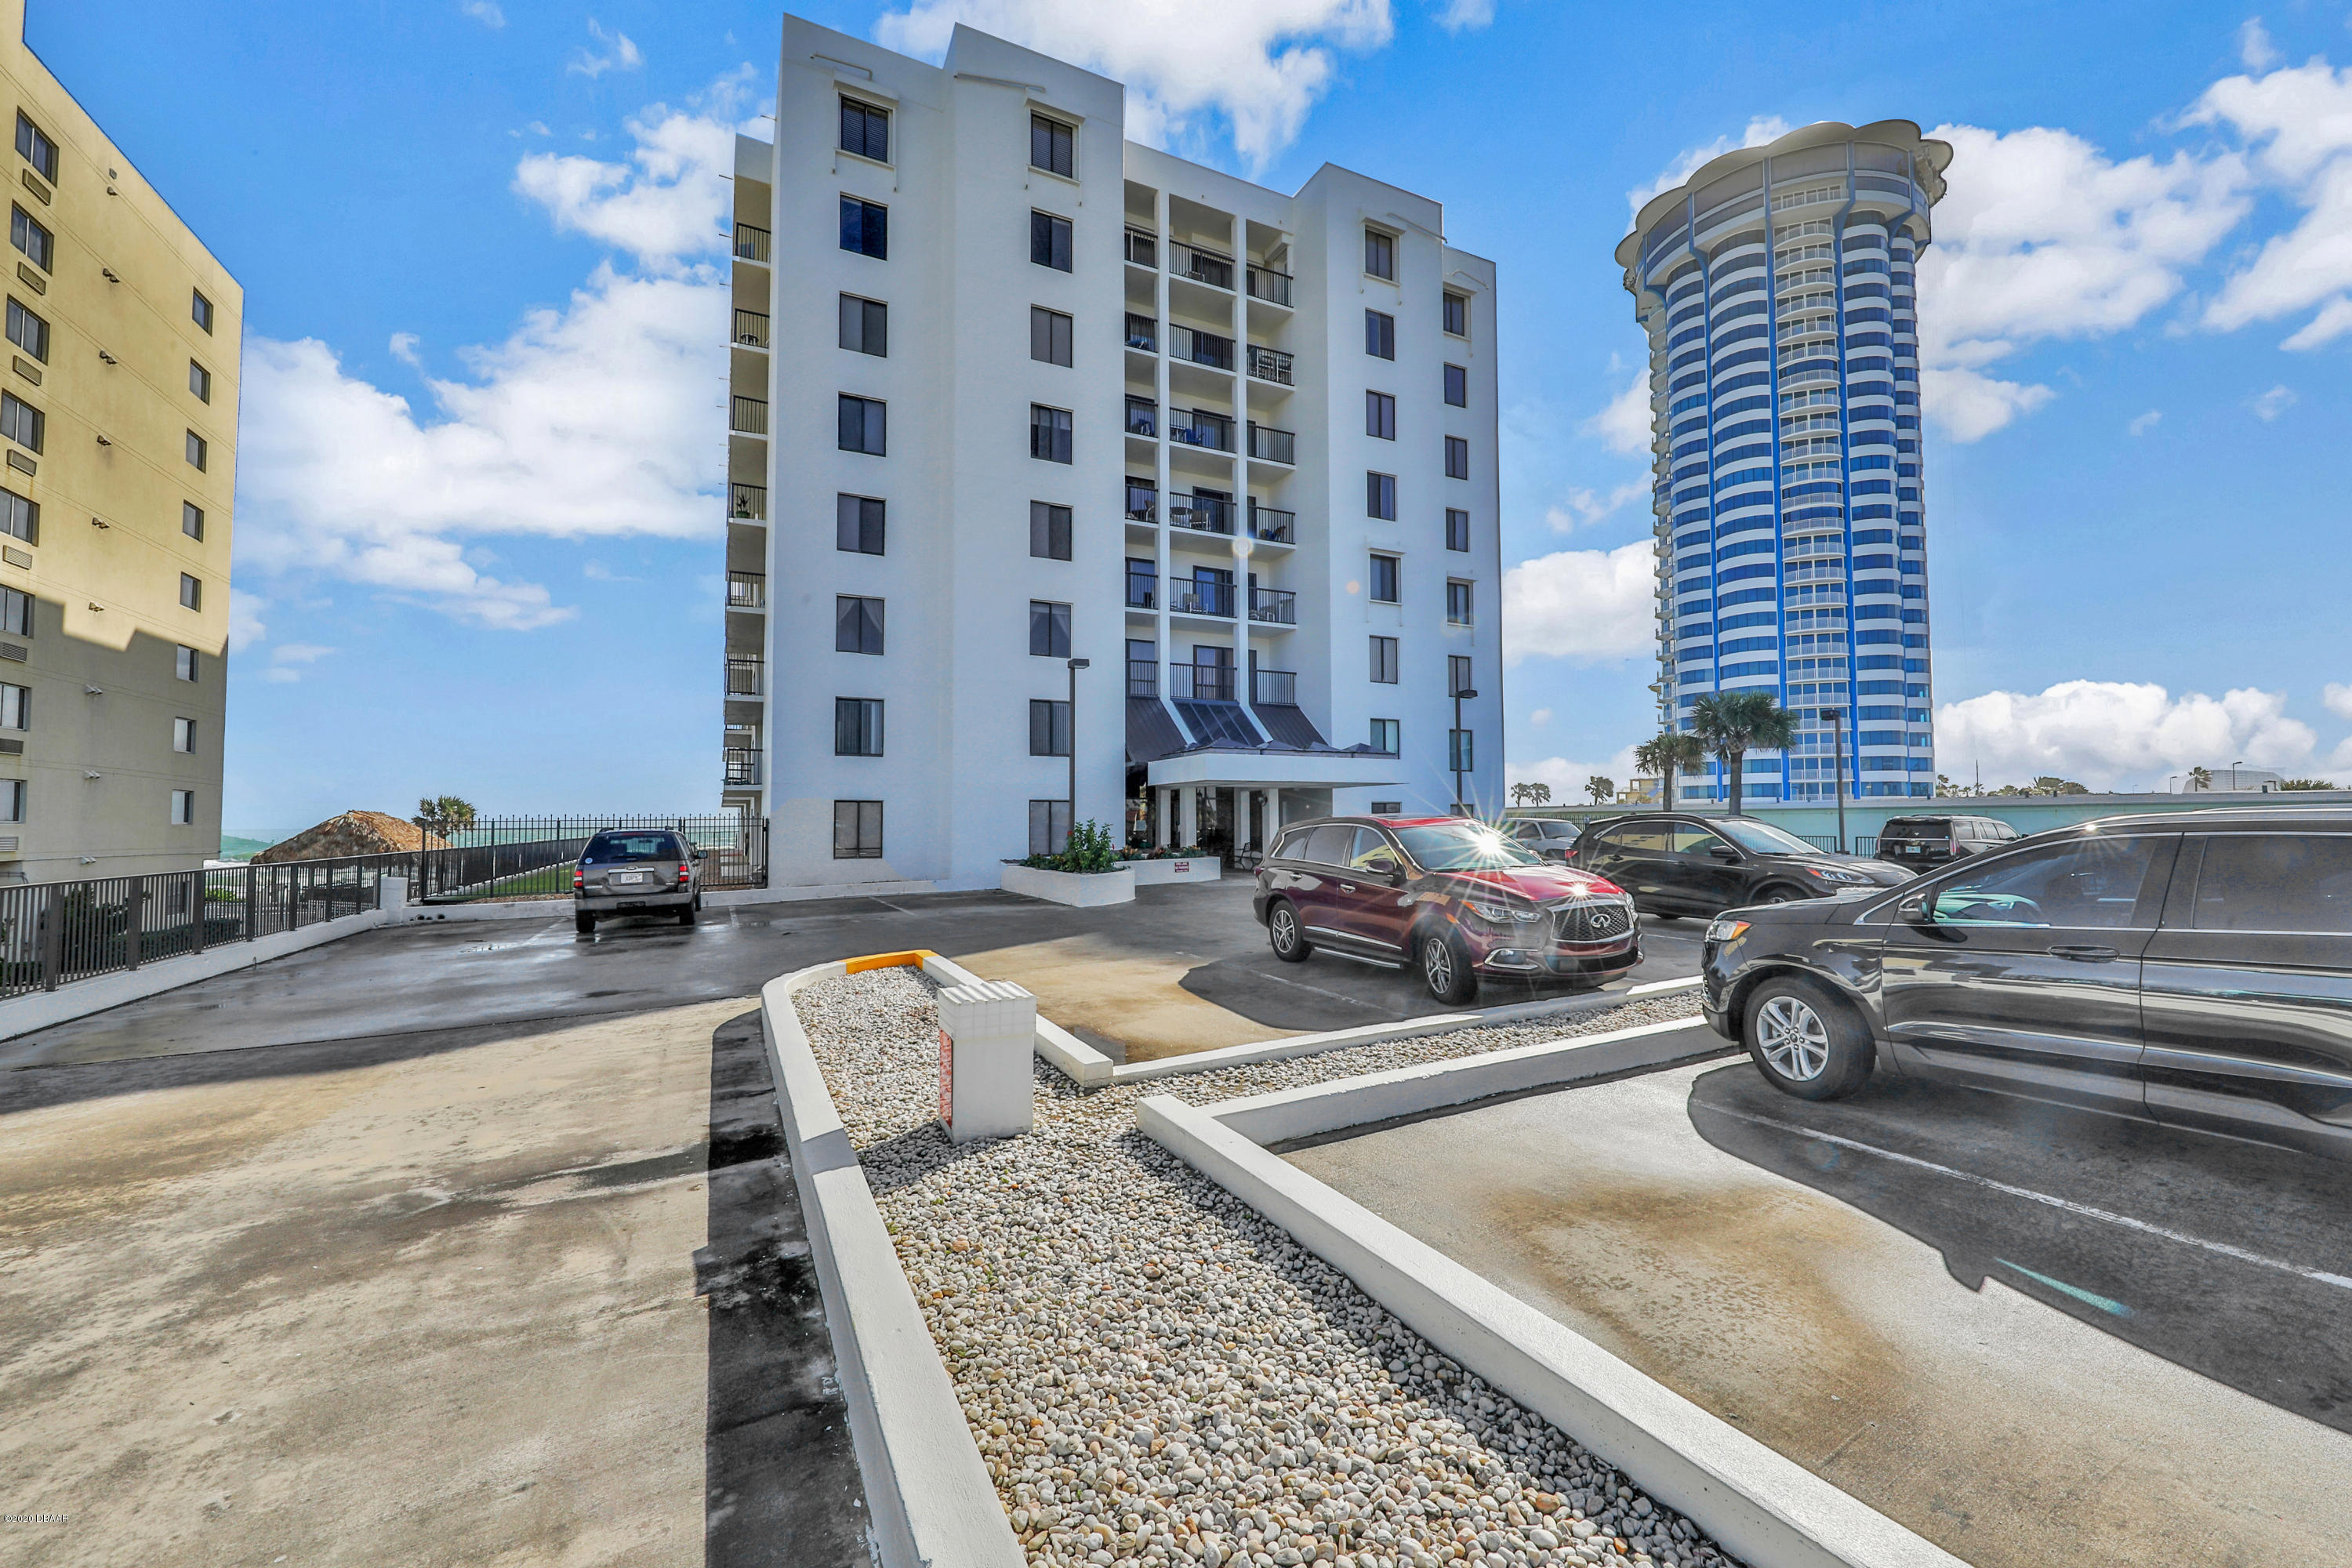 Photo of 2615 S Atlantic Avenue #7H, Daytona Beach Shores, FL 32118